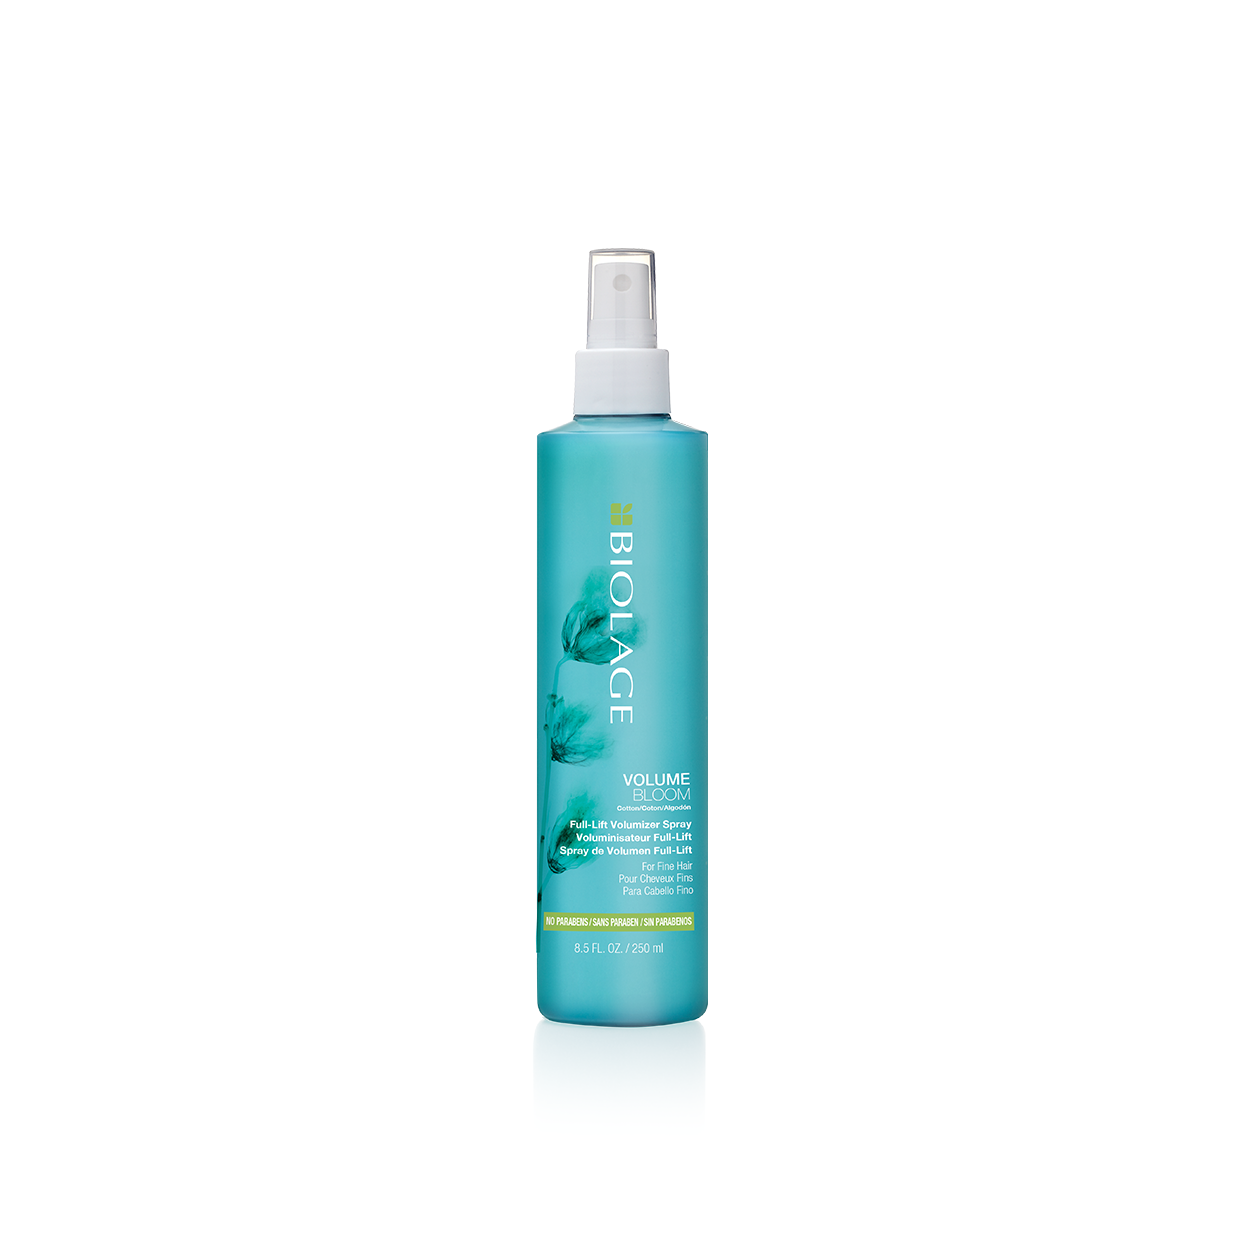 Biolage VolumeBloom Volumising Spray Root-Lift Spray for Fine Hair